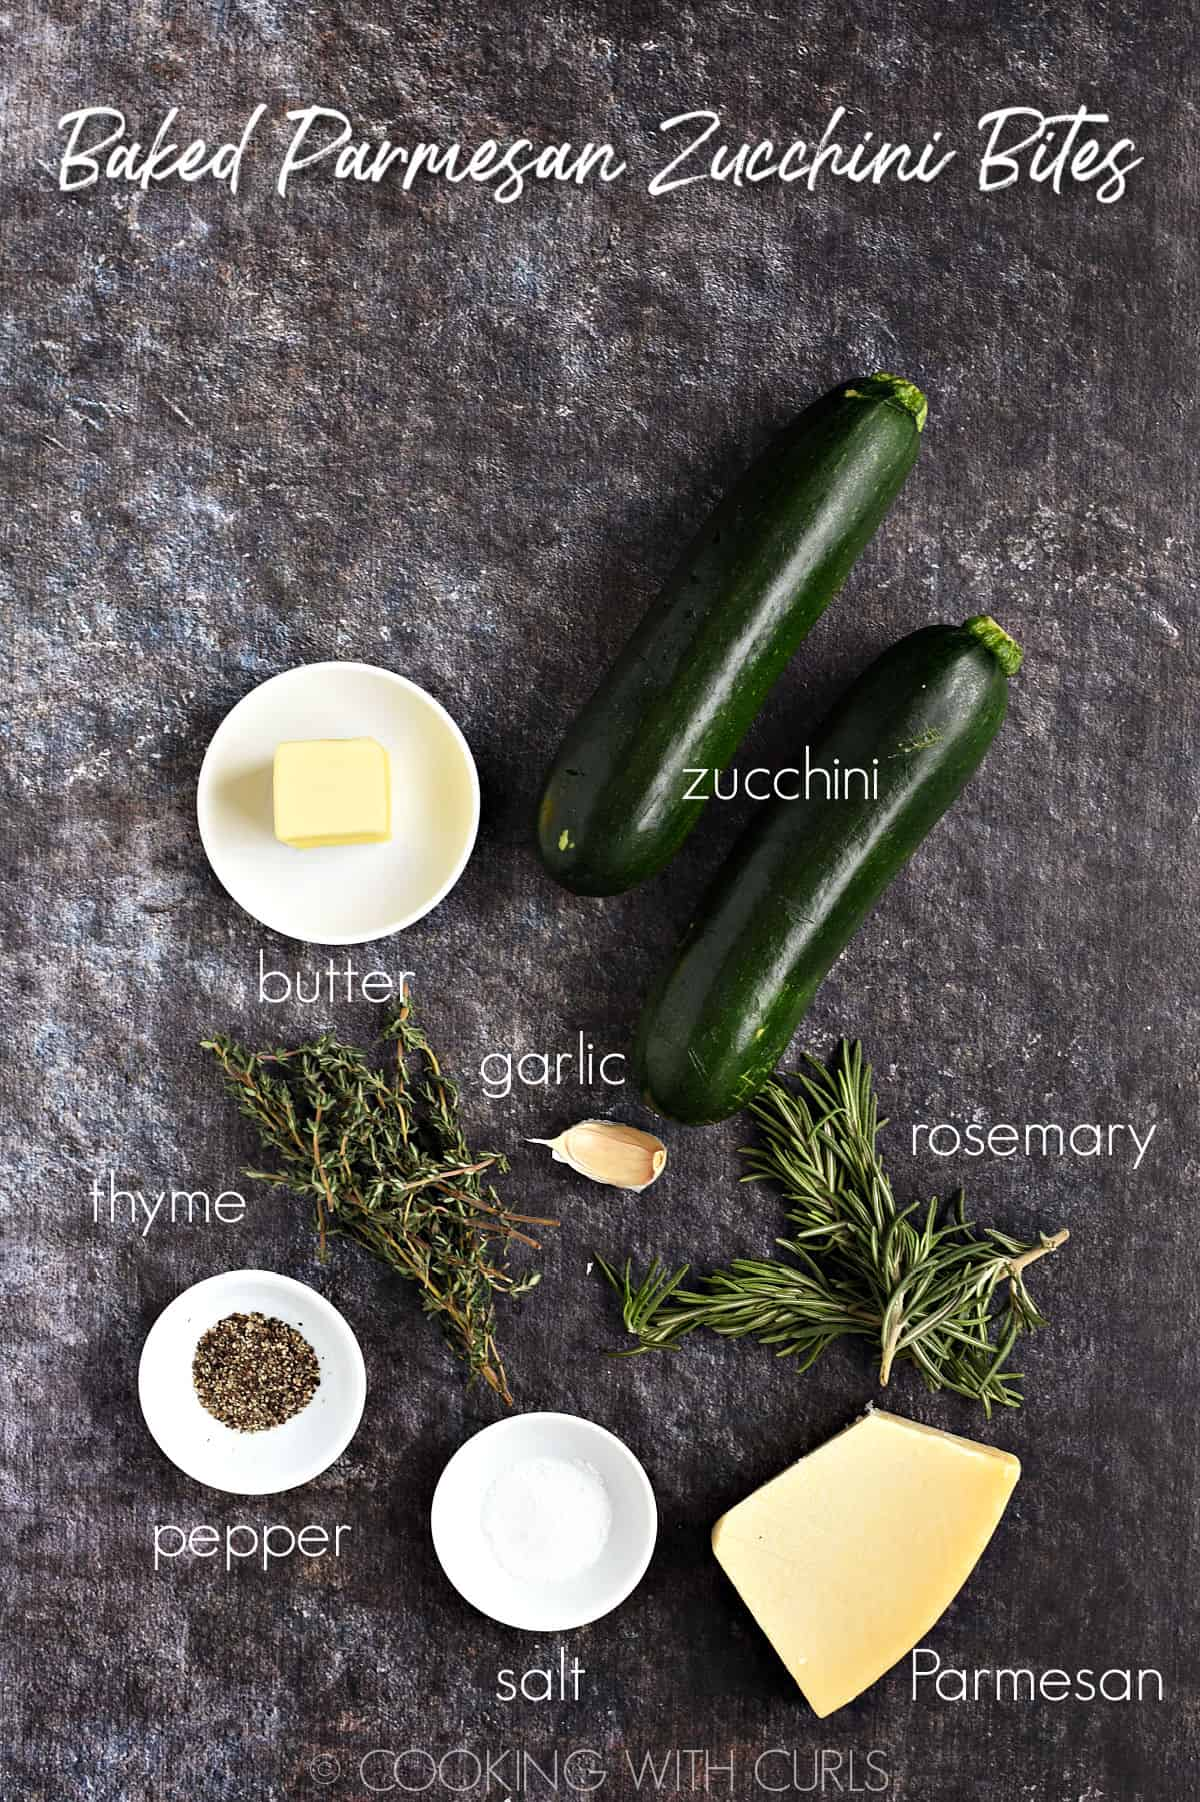 Two zucchini, butter, garlic, rosemary, thyme, Parmesan, salt and pepper on a rustic background.